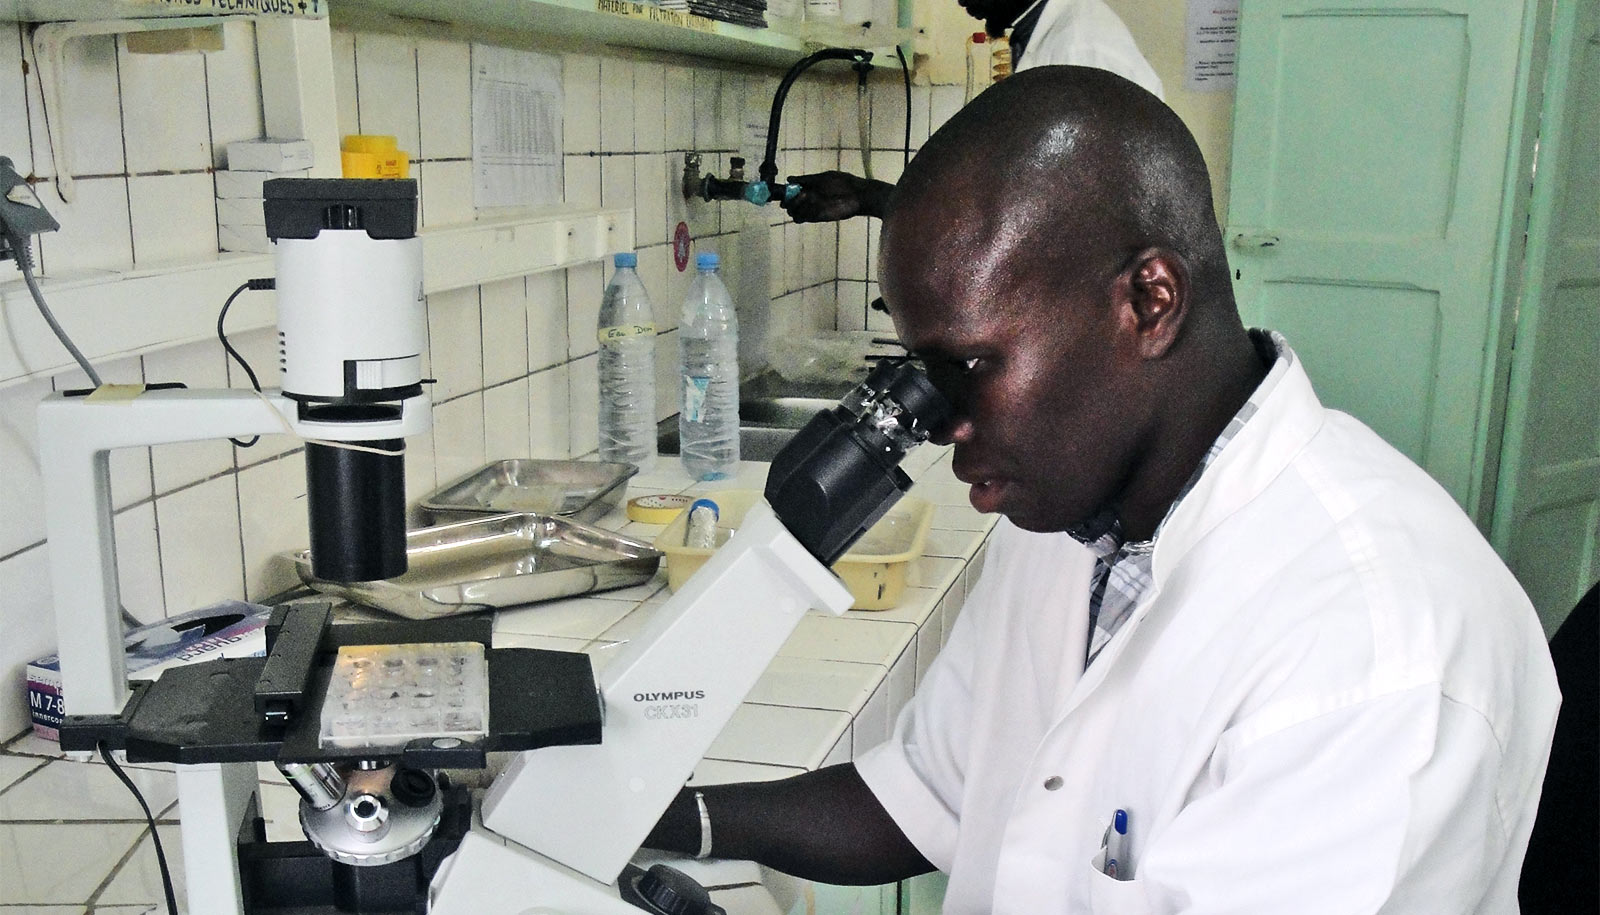 Senghor looks into a microscope while wearing a white lab coat